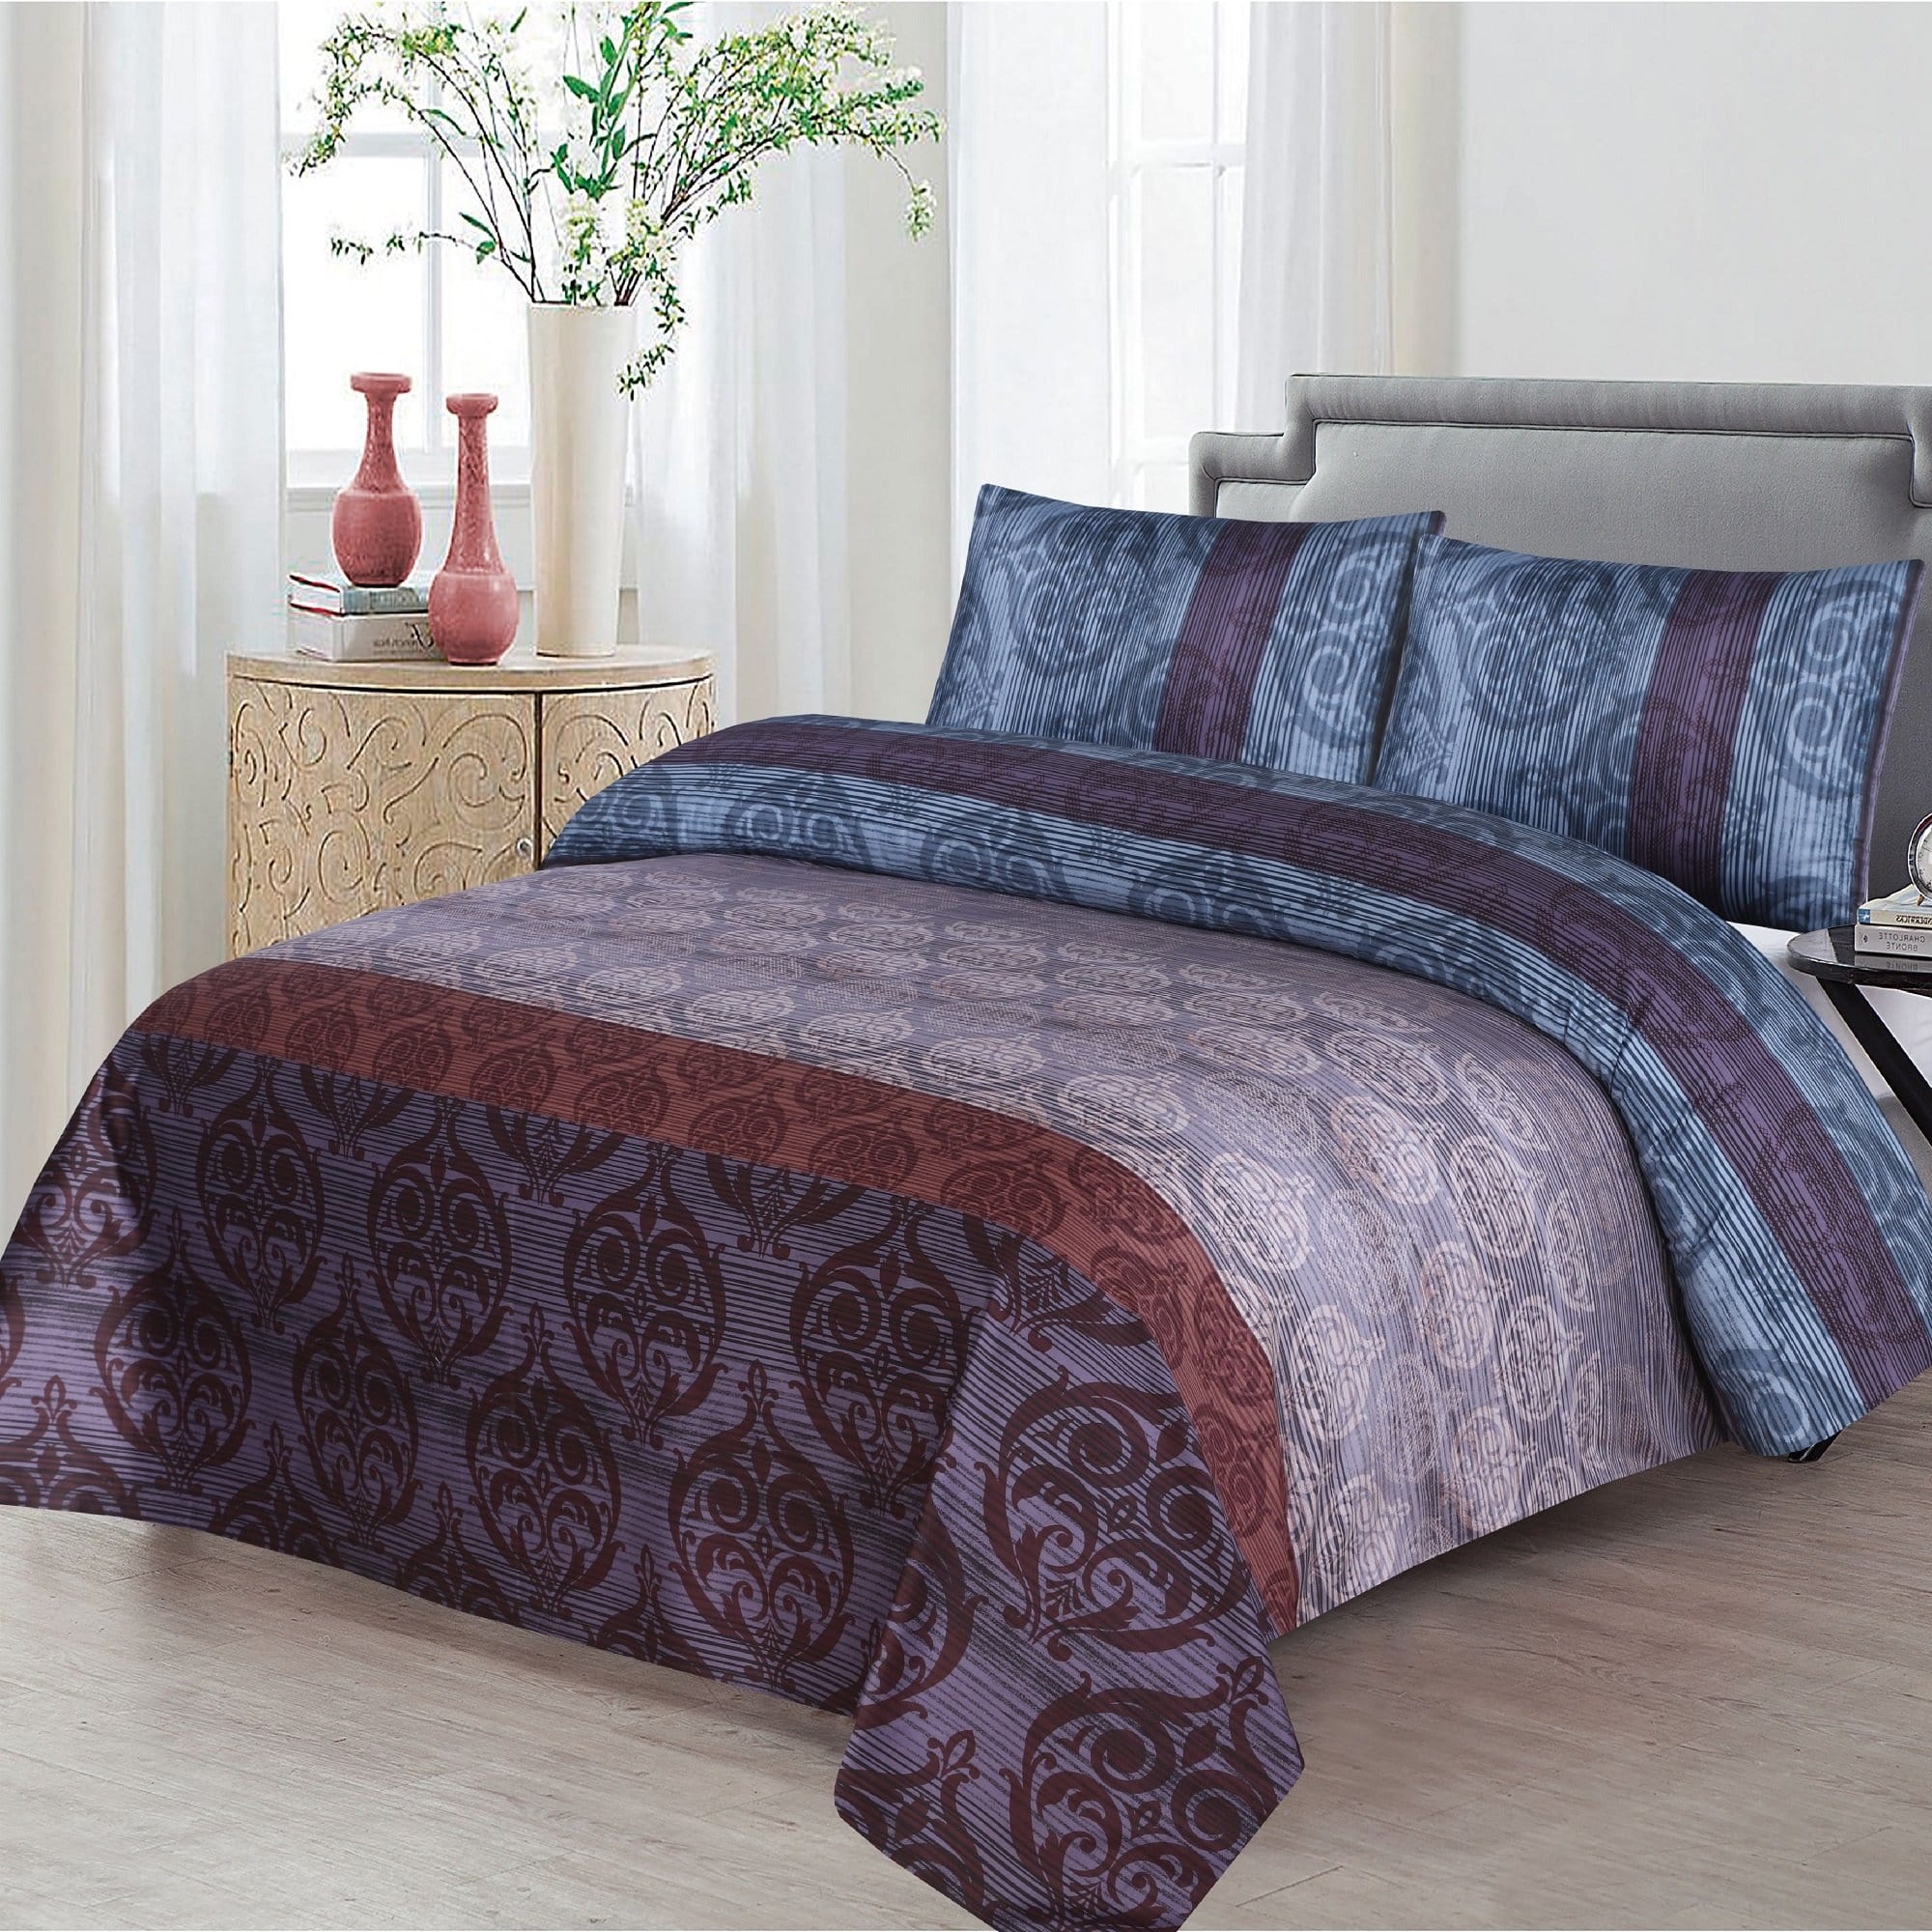 Grace D395-Reactive cotton Satin Quality king size Bedsheet with 2 pillow covers.